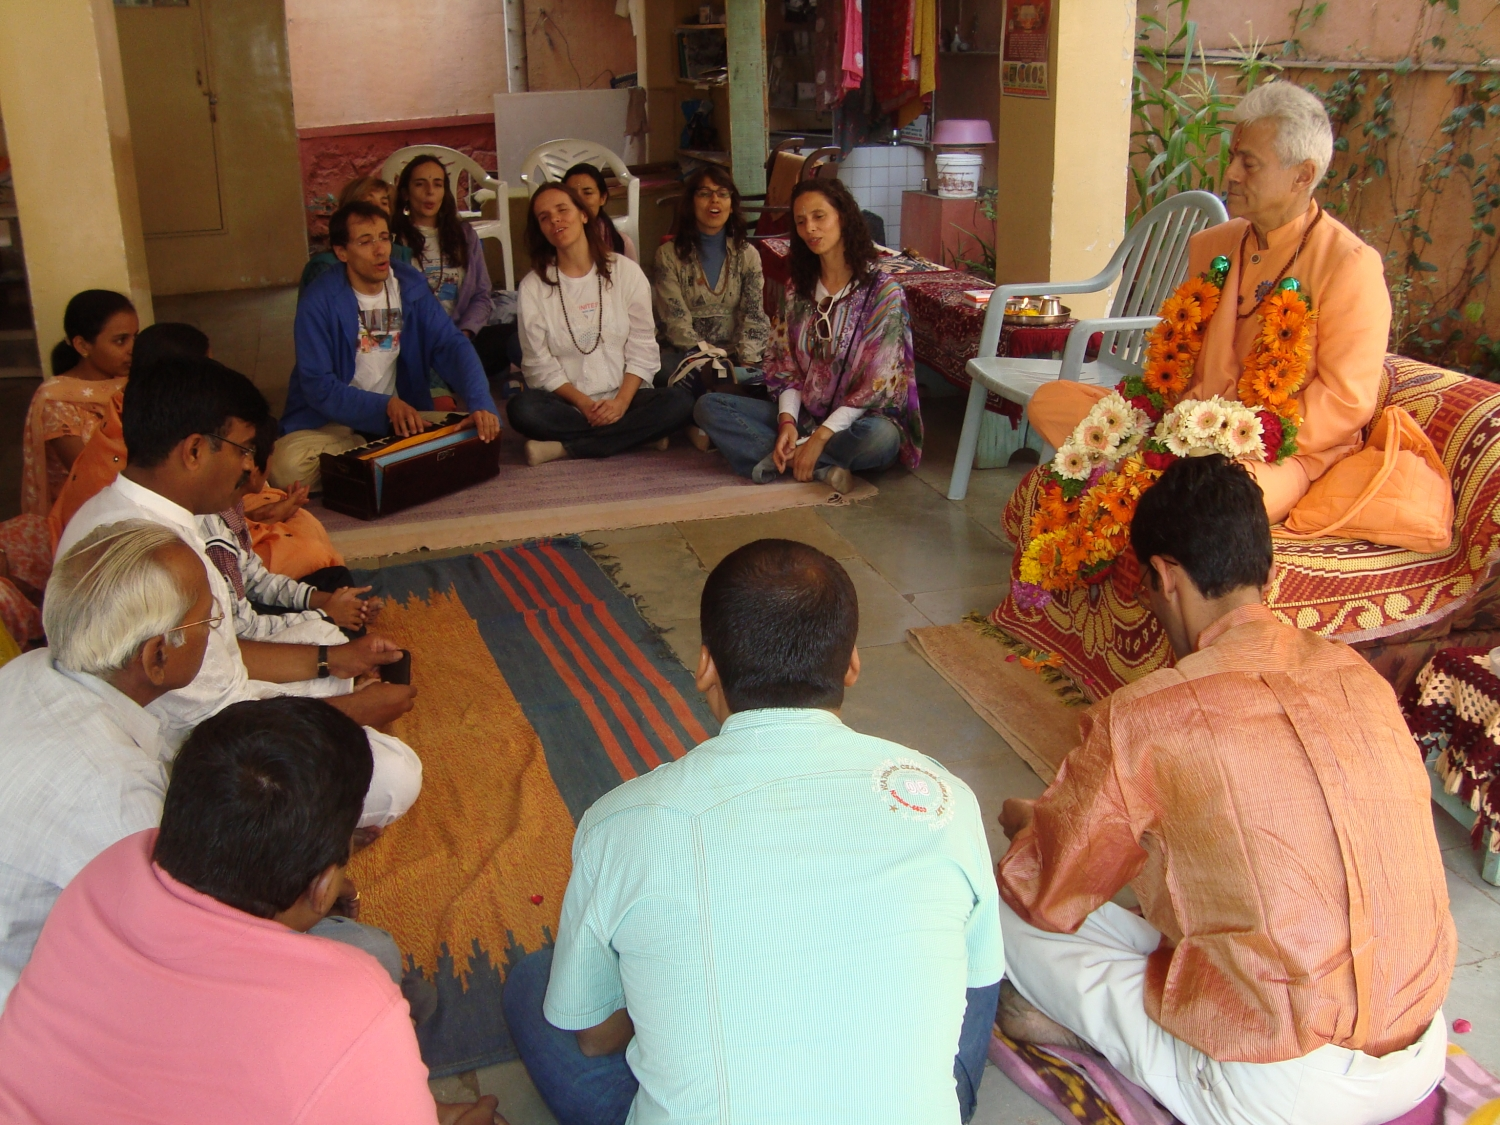 Meeting of H.H. Jagat Guru Amrta Súryánanda Mahá Rája with Dr. Jagadish Bhutada, Keivalyadhama Yoga Institute, Lonavala, India - 2009, December